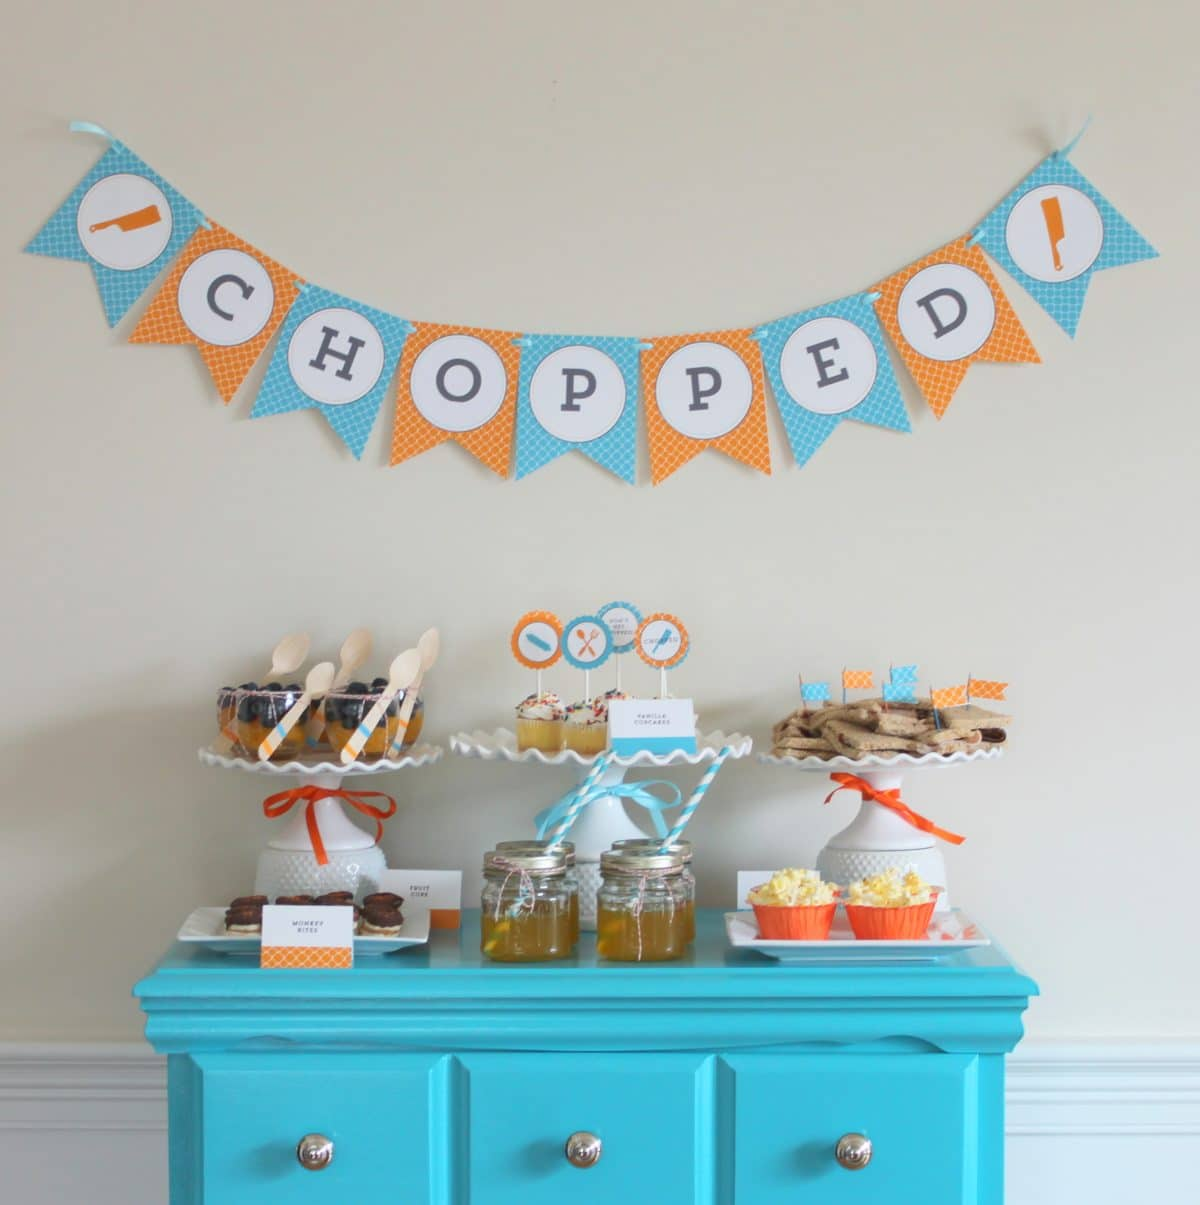 Tween Party Ideas - Chopped Party - Somewhat Simple